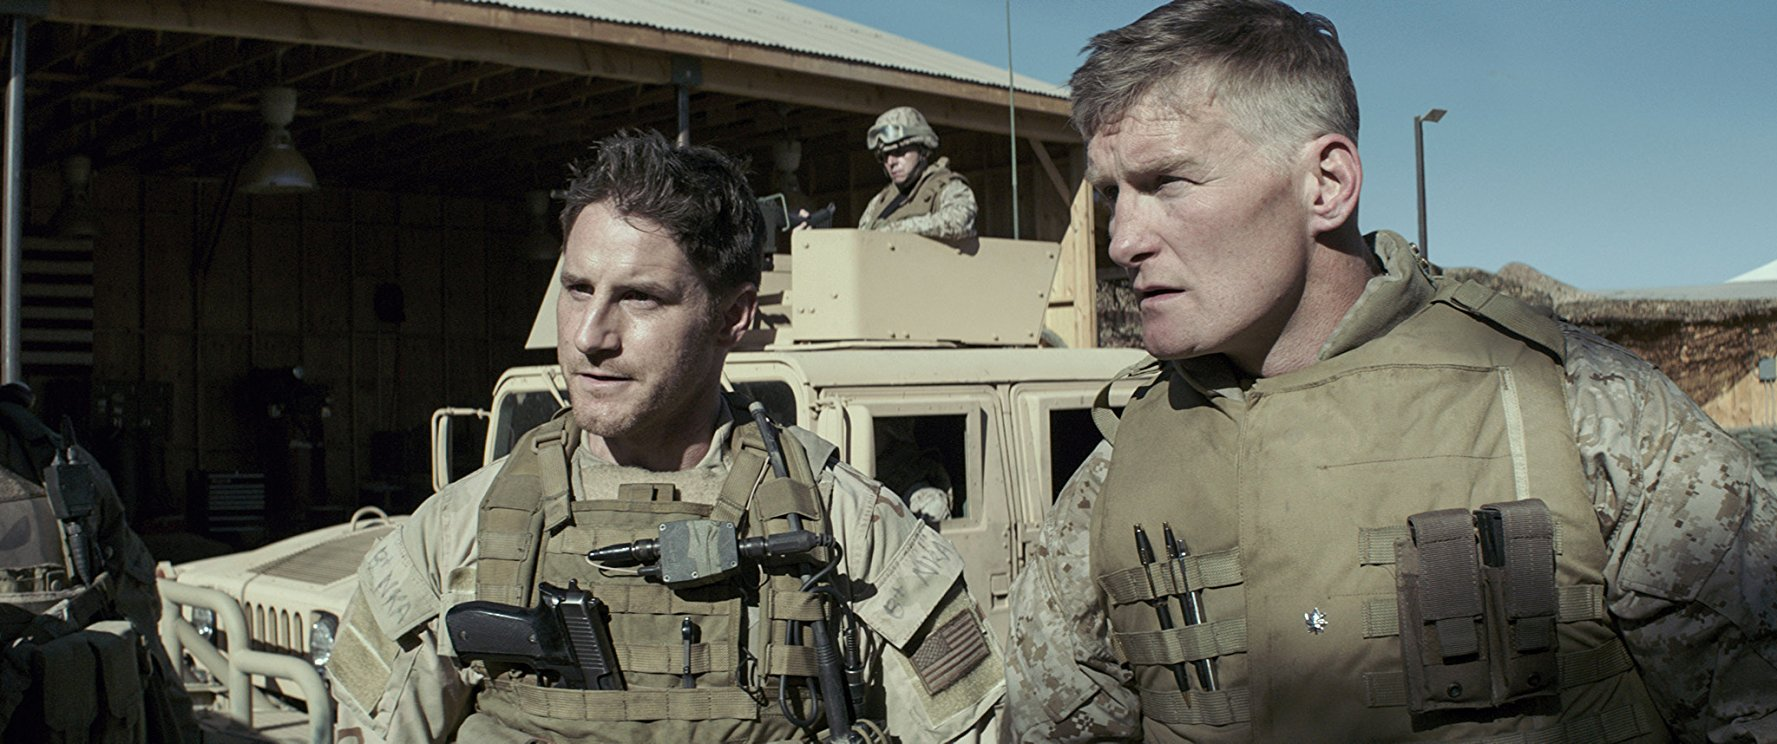 Watch Movies and TV Shows with character Navy Seal Lt